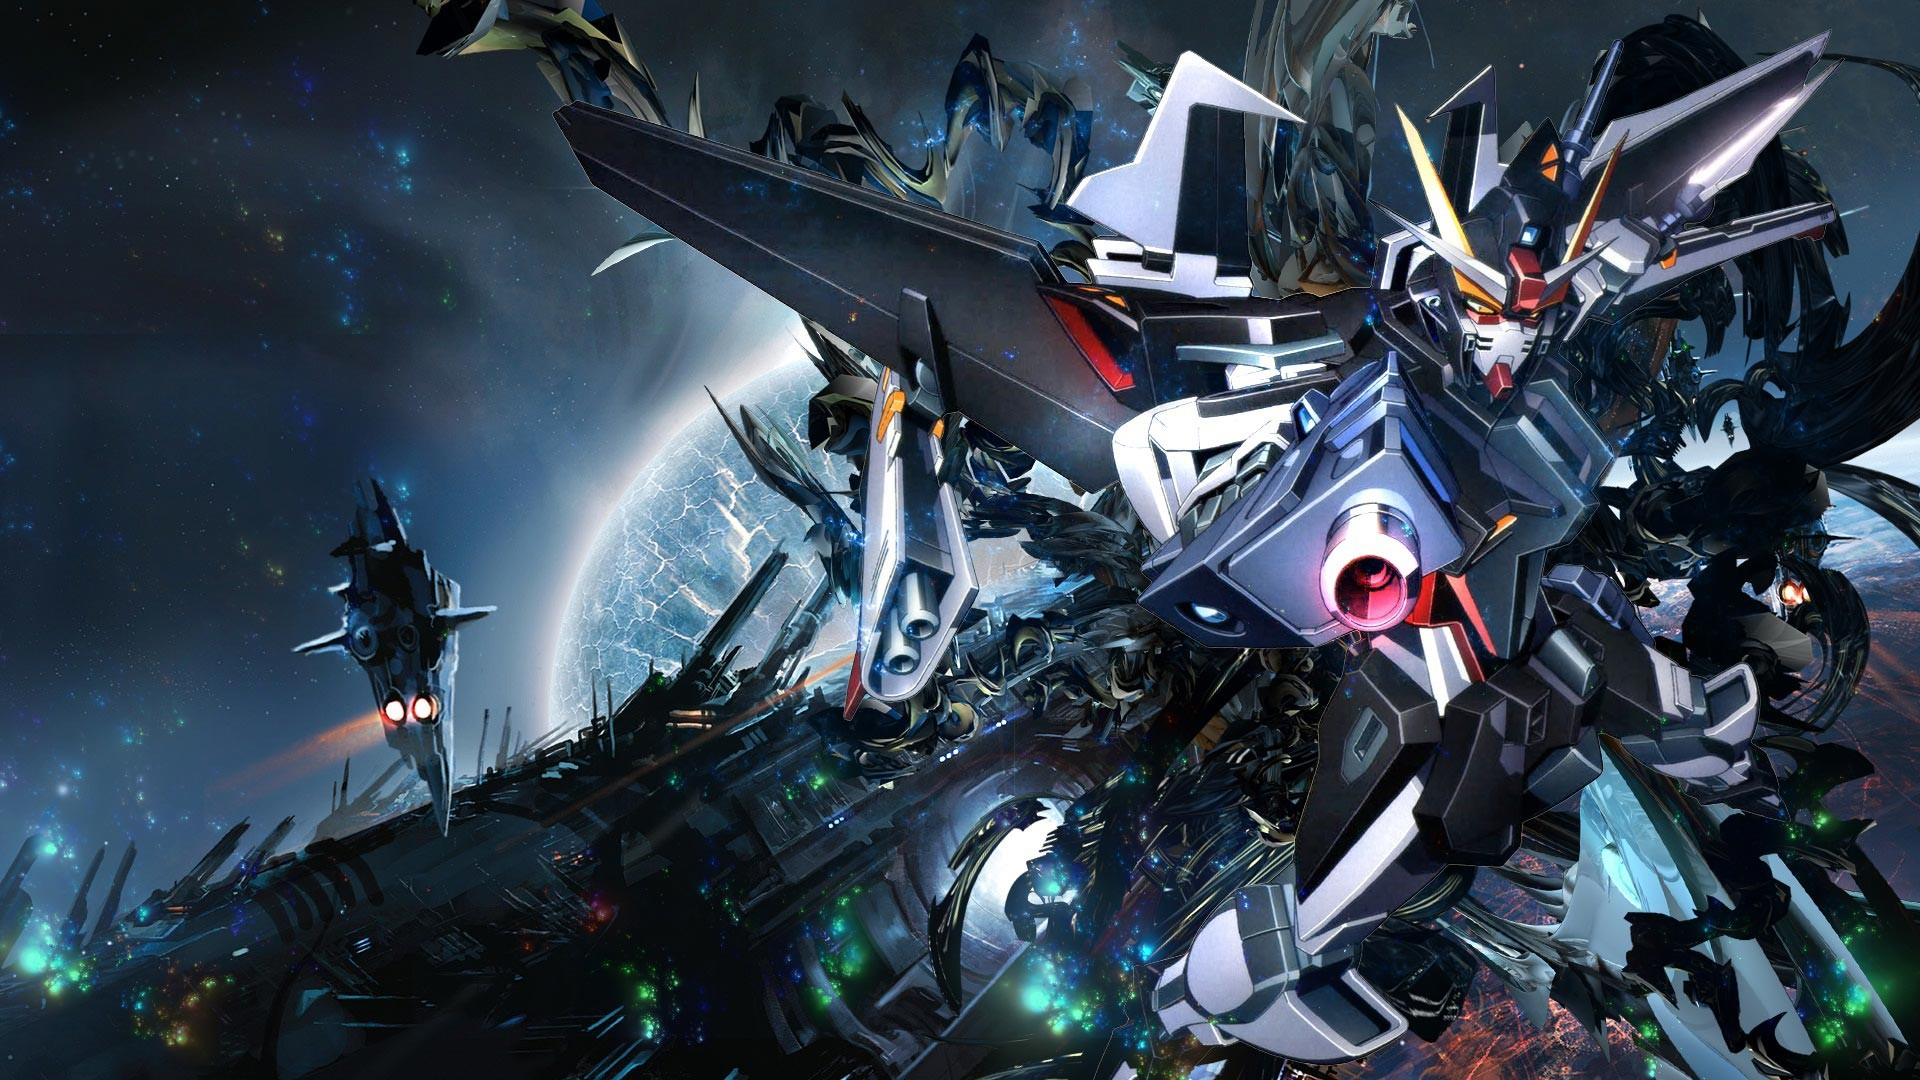 Gundam 00 Hd Wallpaper Wallpapertag